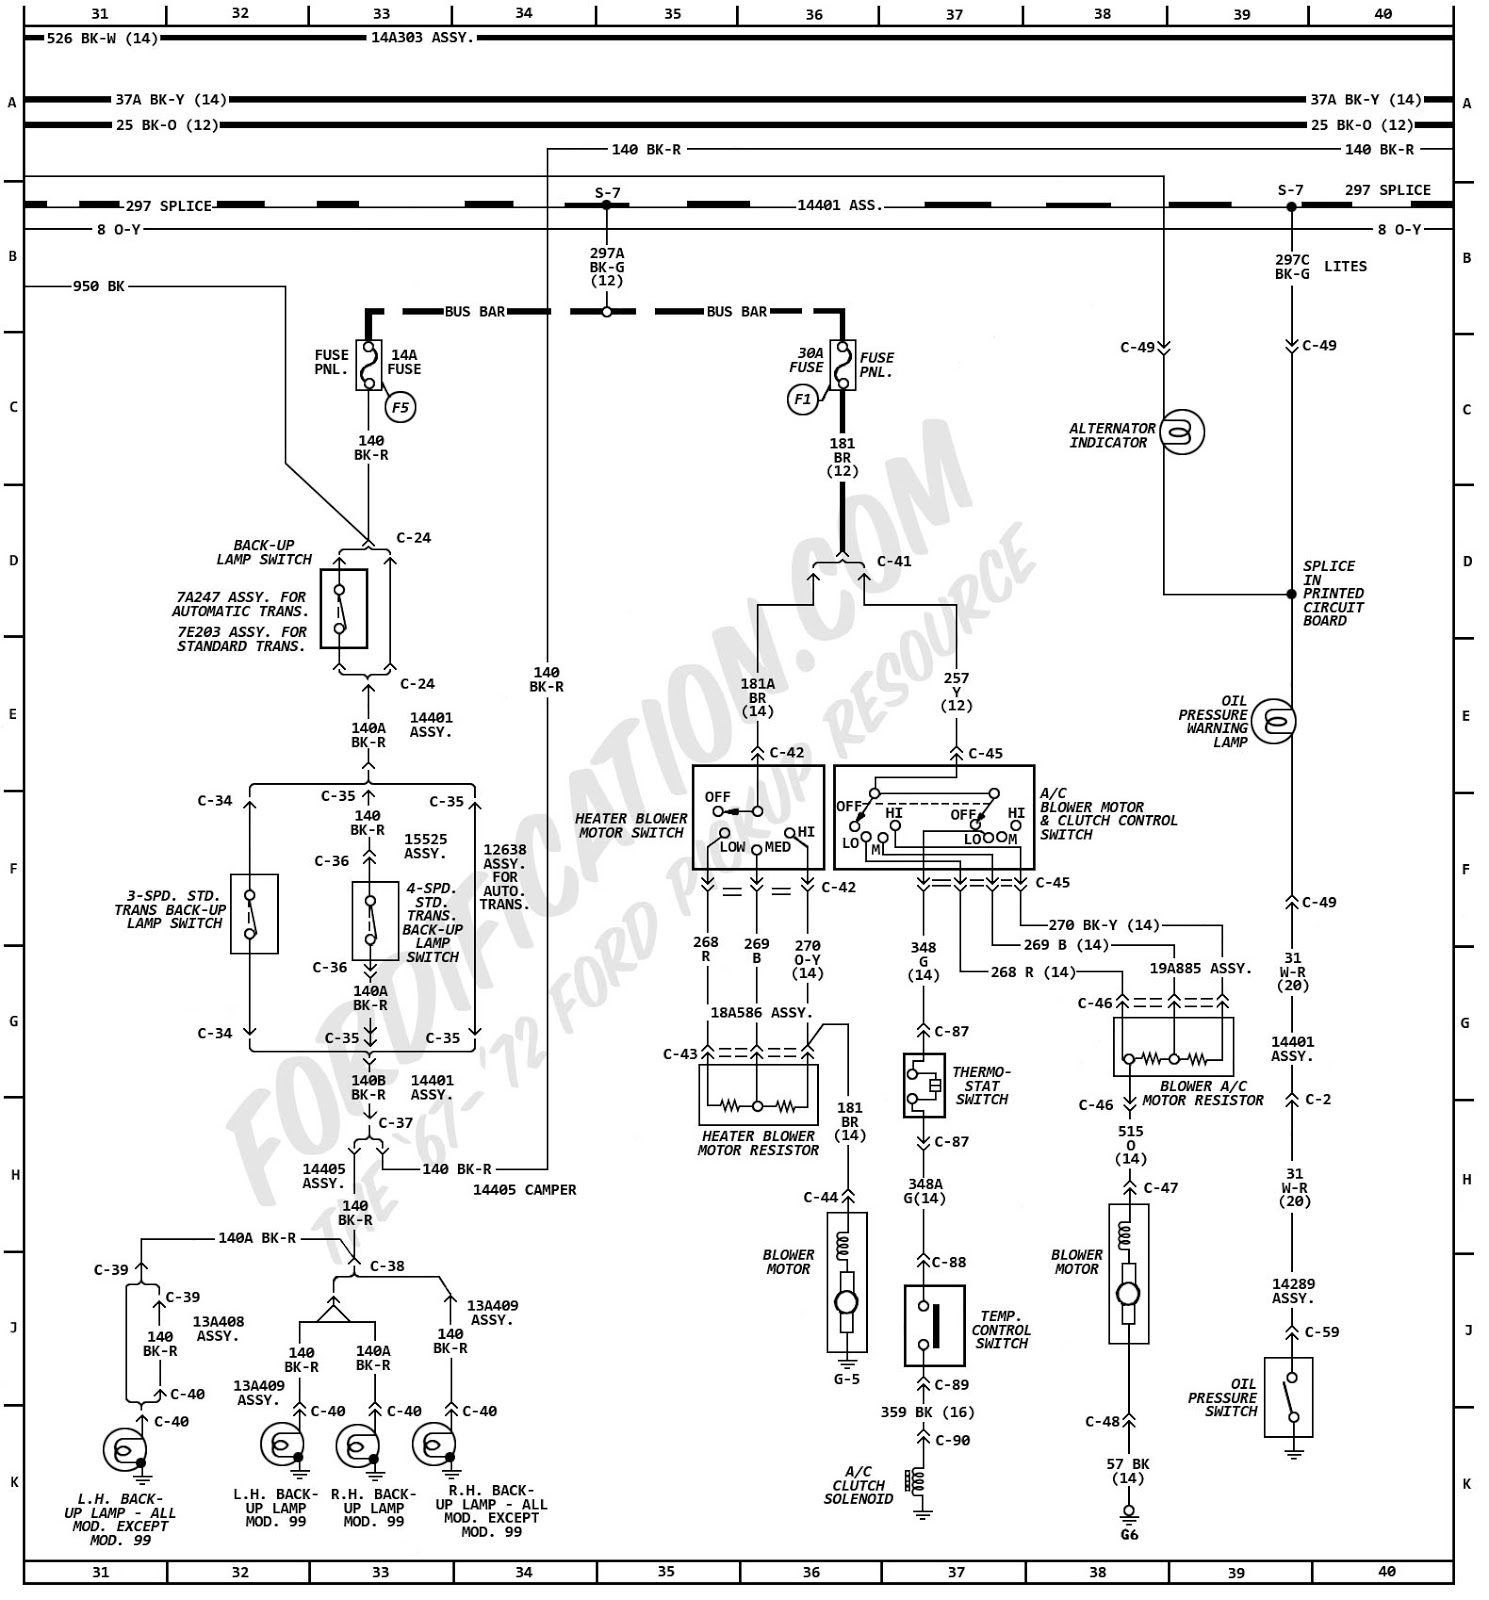 medium resolution of chevy radio wire harness stereo connect wiring chv 1858 ebay wiring diagram for 2005 chevy aveo on 1858 metra gm wire harness